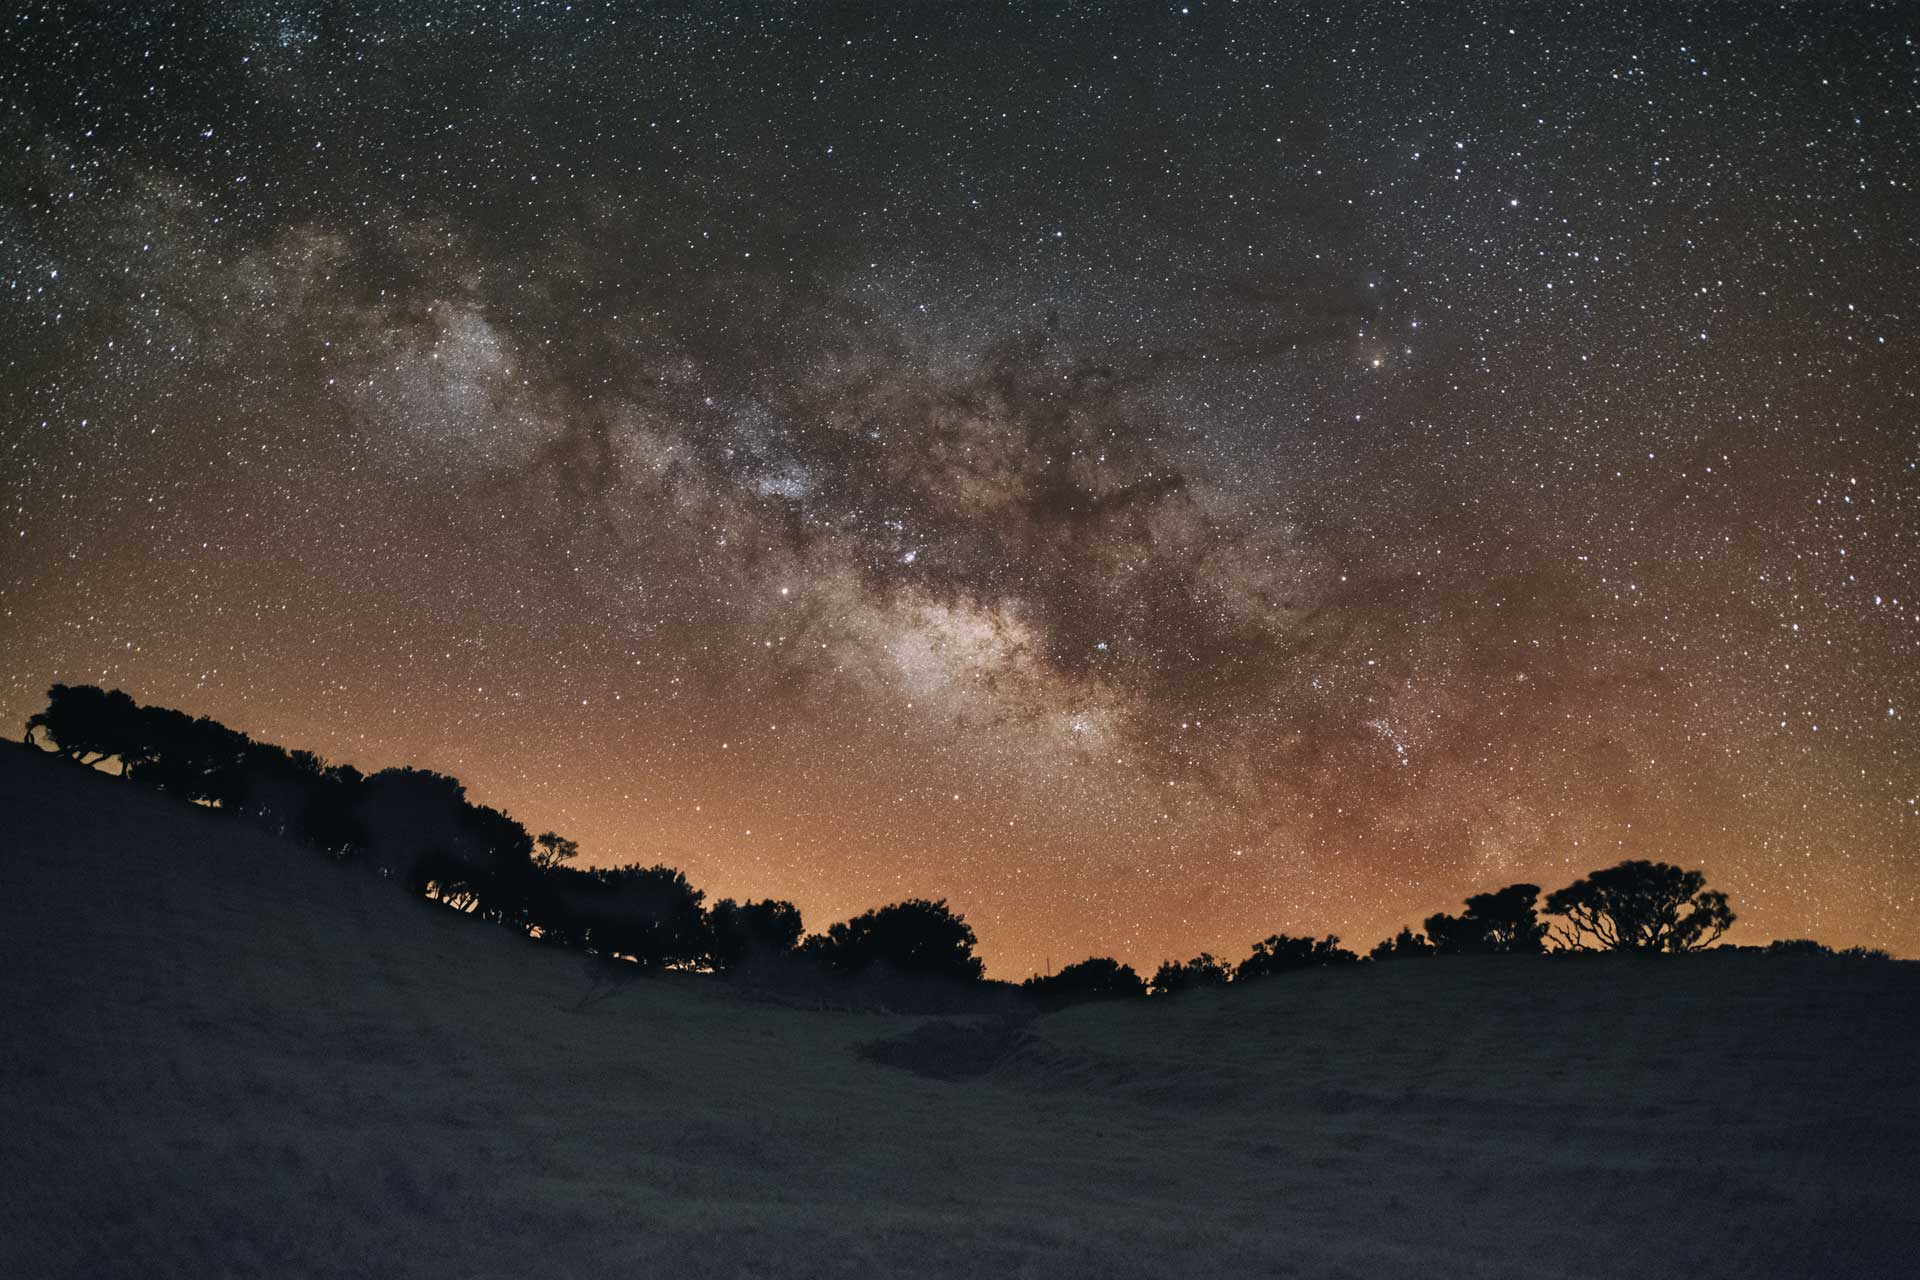 Milky Way Galaxy over hills with trees